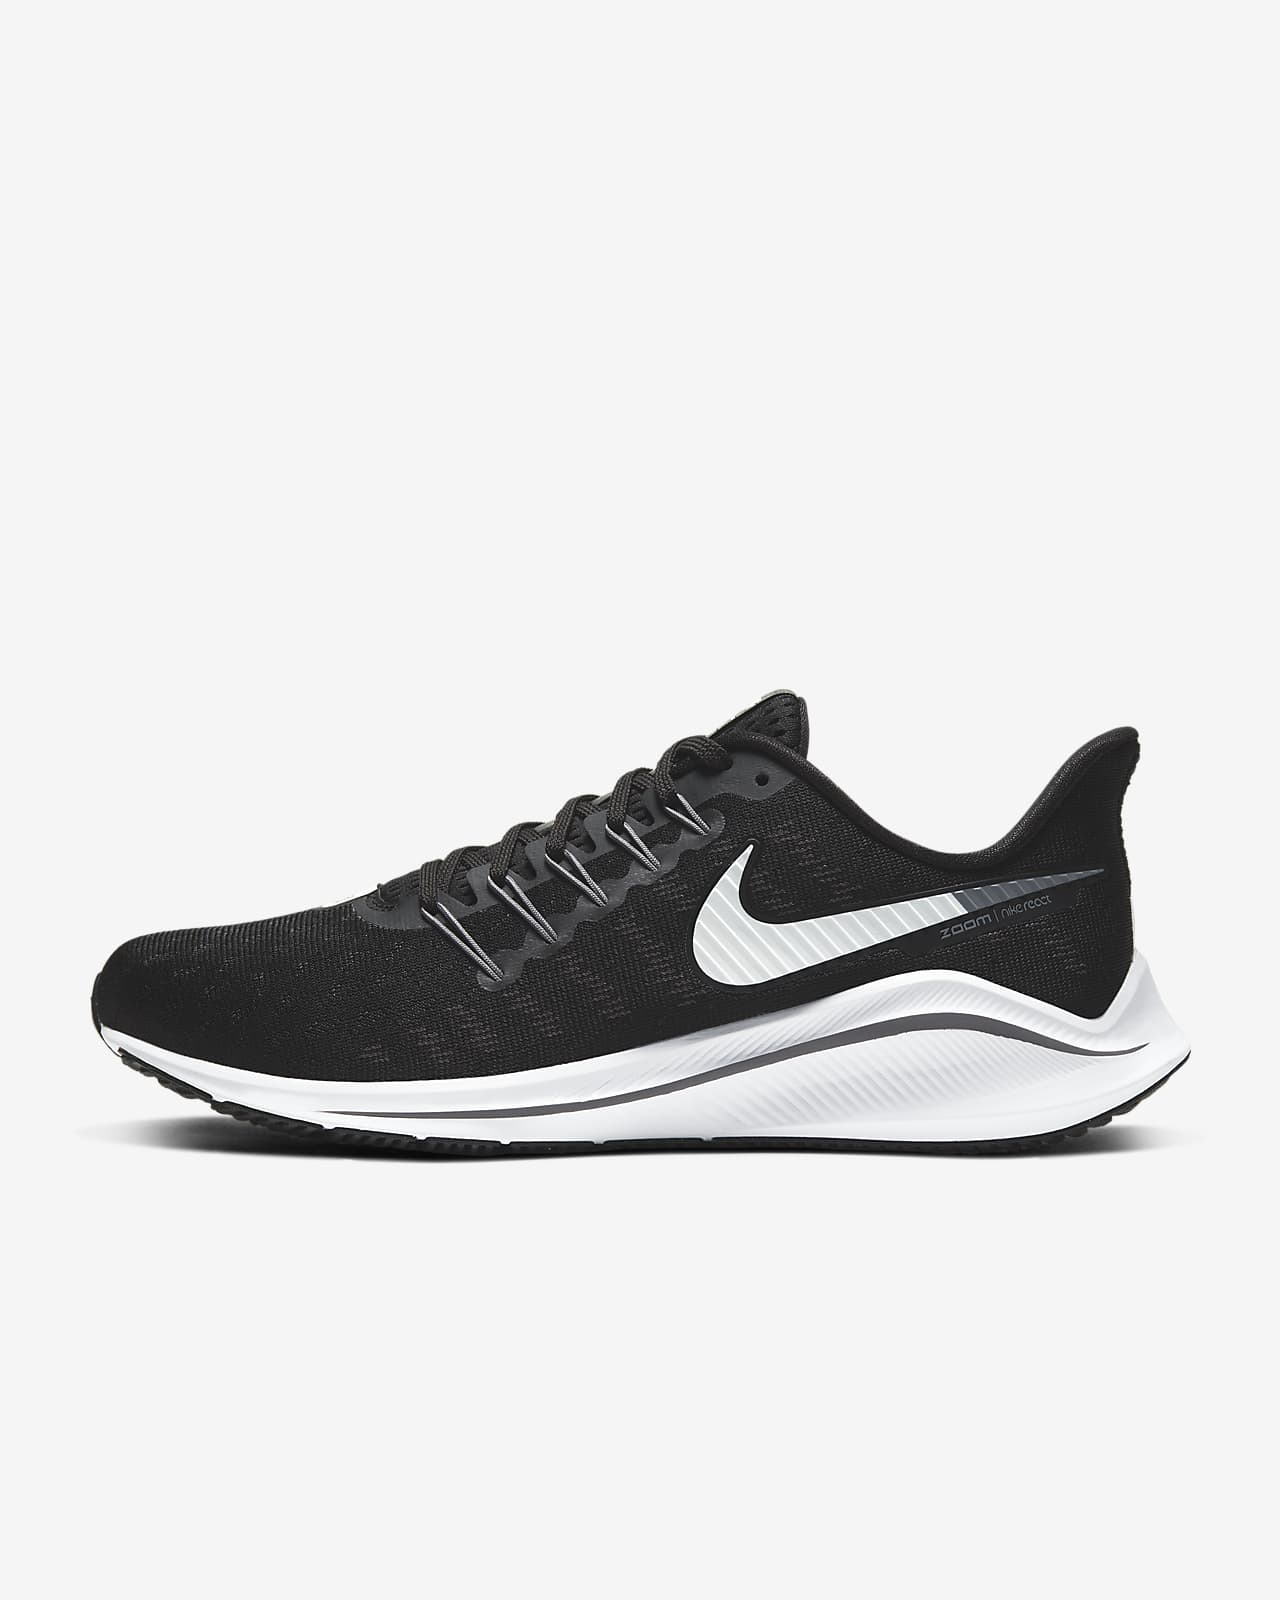 Nike Air Zoom Vomero 14 Men S Running Shoe Nike Com